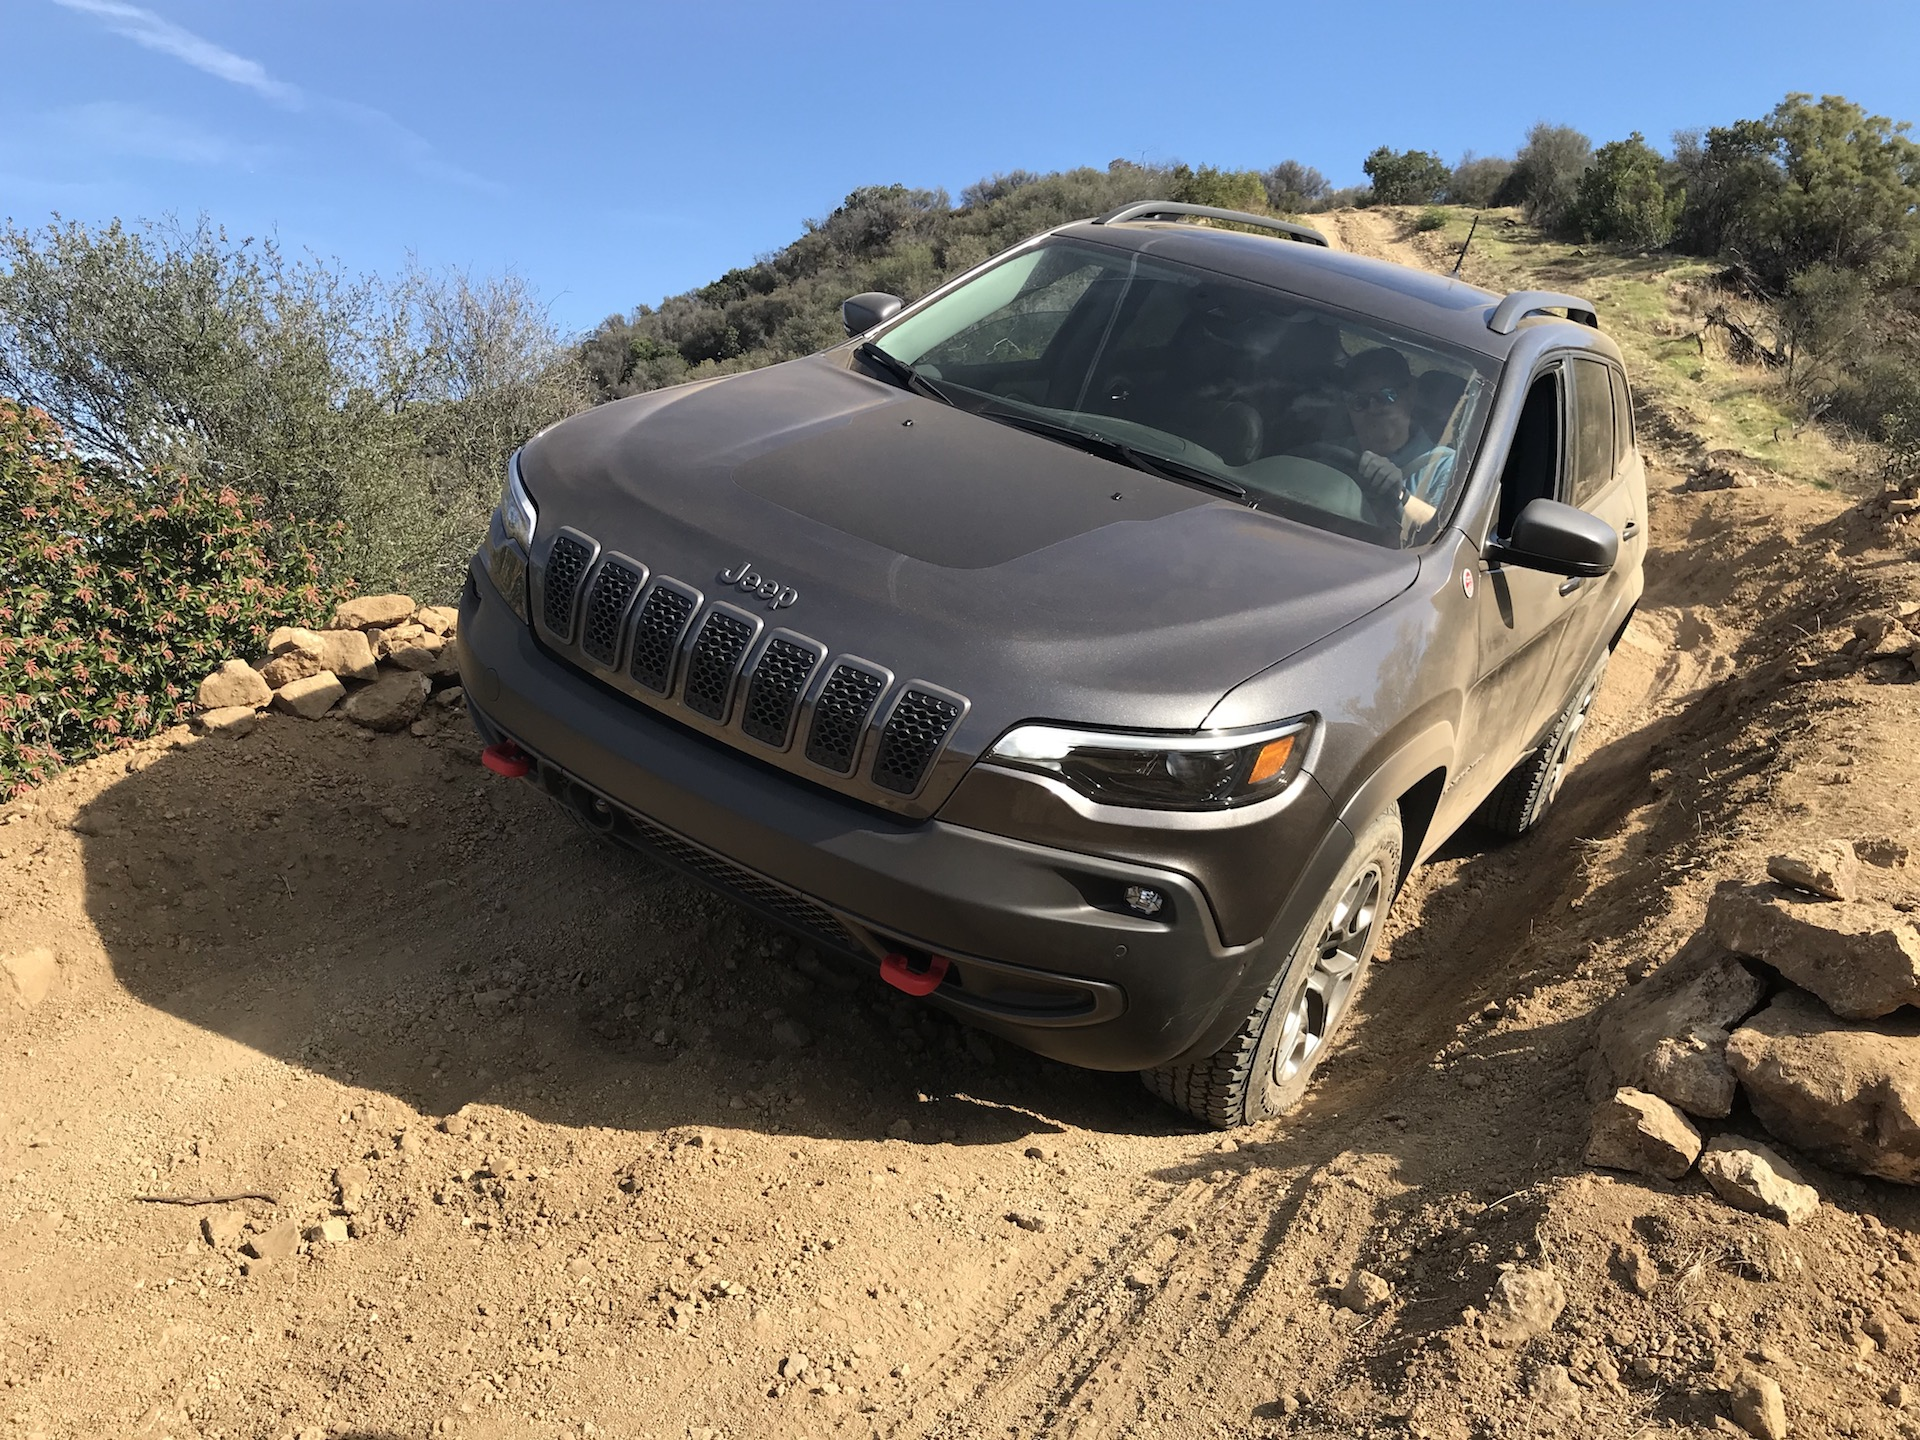 2019 Jeep Cherokee First Drive More Conventional Power Still Sport Fuel Filter Driven Cadillac Wins Daytona Evs In Georgia Whats New